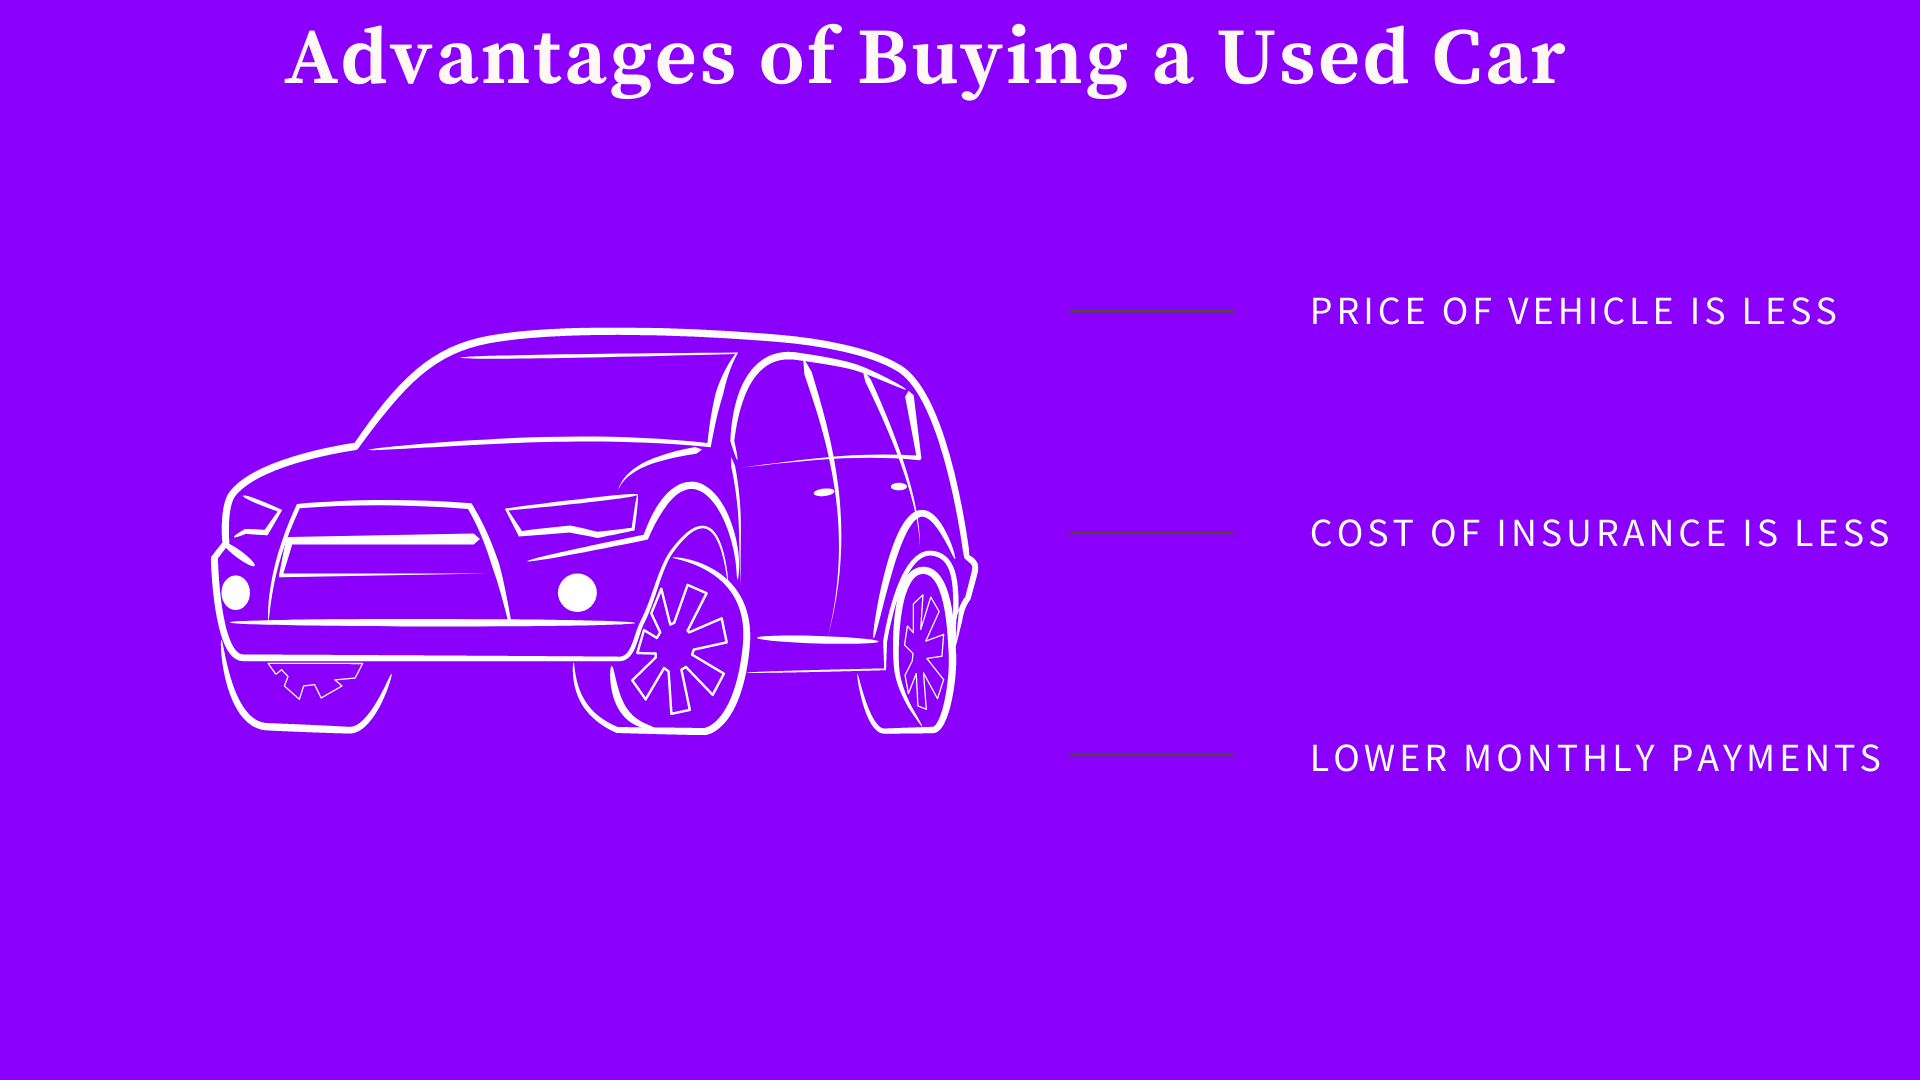 1: Price of Vehicle is less. 2. Cost of Insurance is less. 3. Lower monthly payments